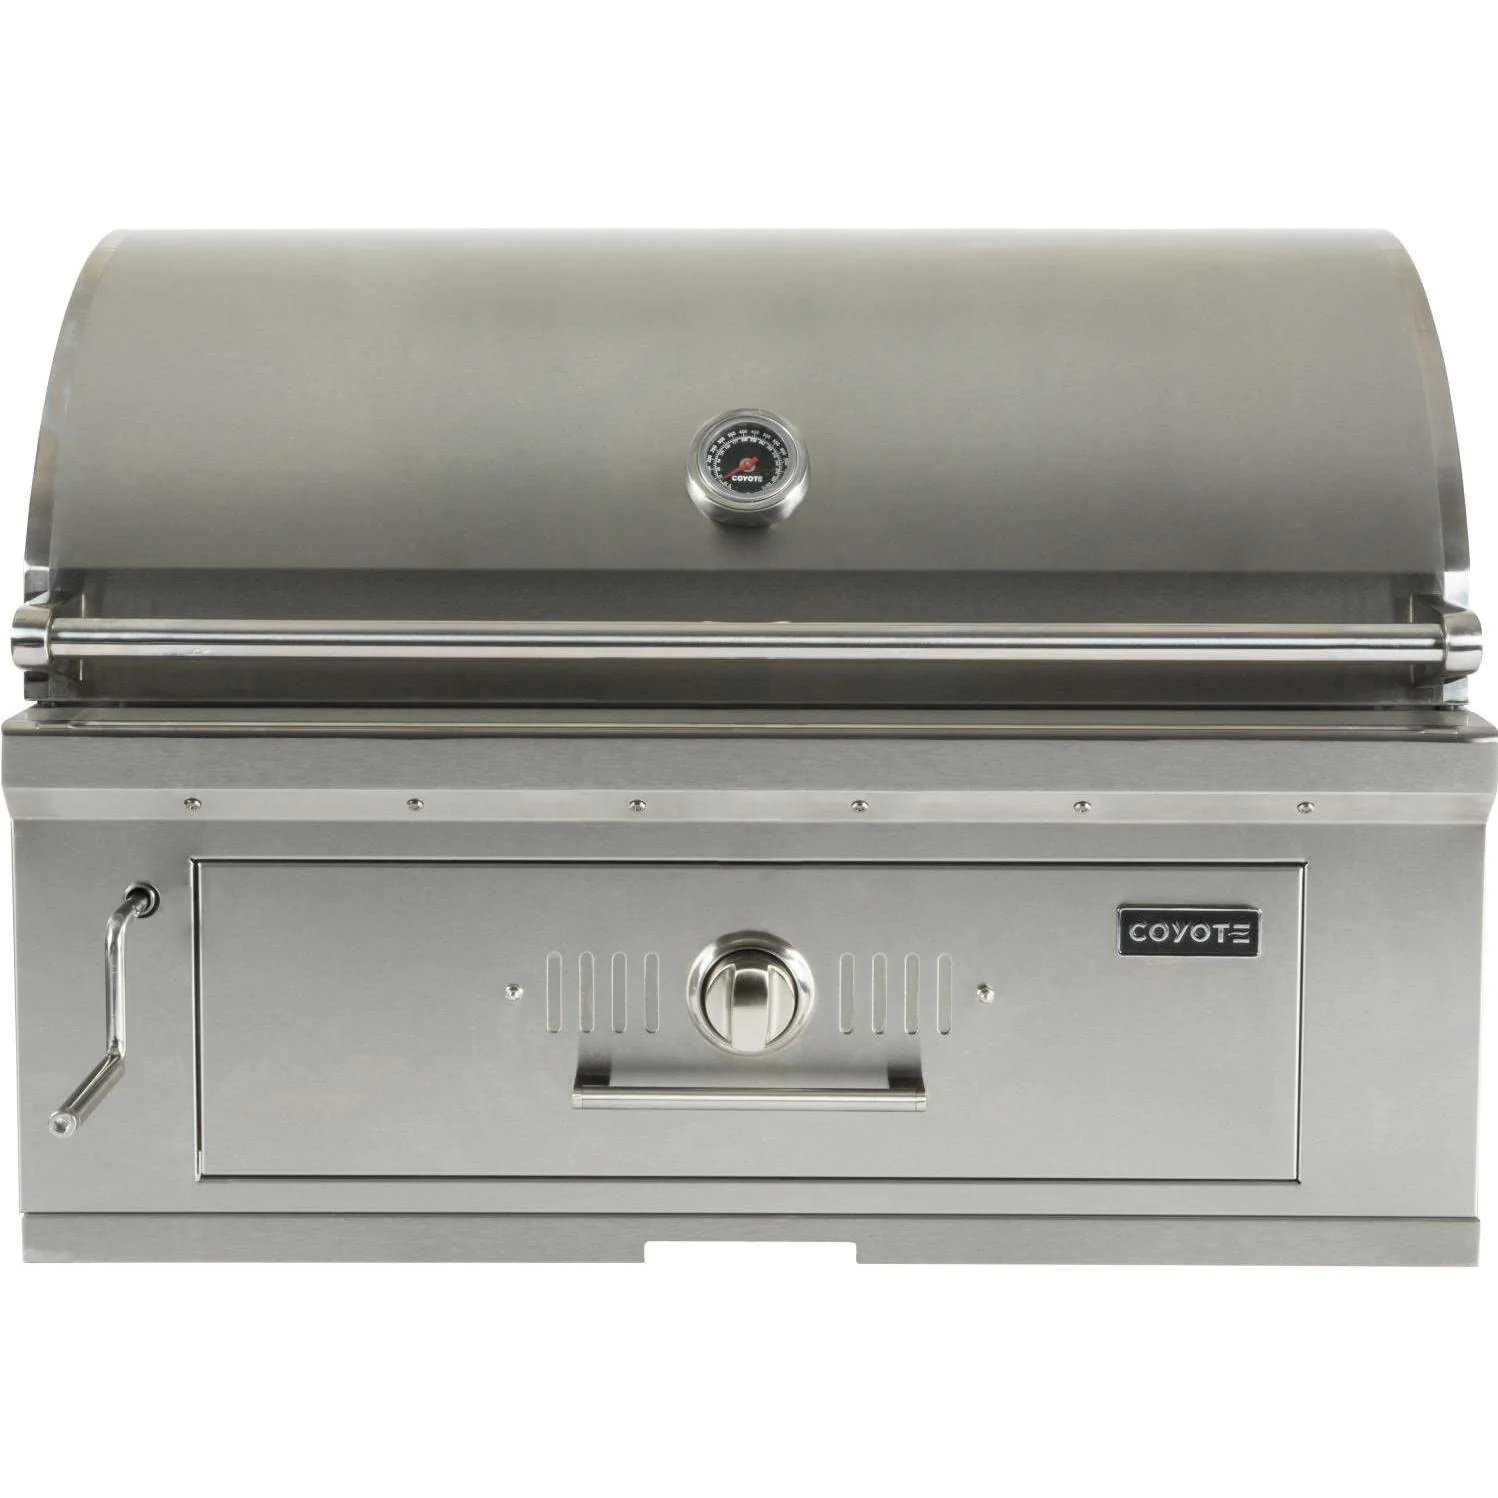 Coyote 36-Inch Built-In Stainless Steel Charcoal Grill - Best Built In Charcoal Grills